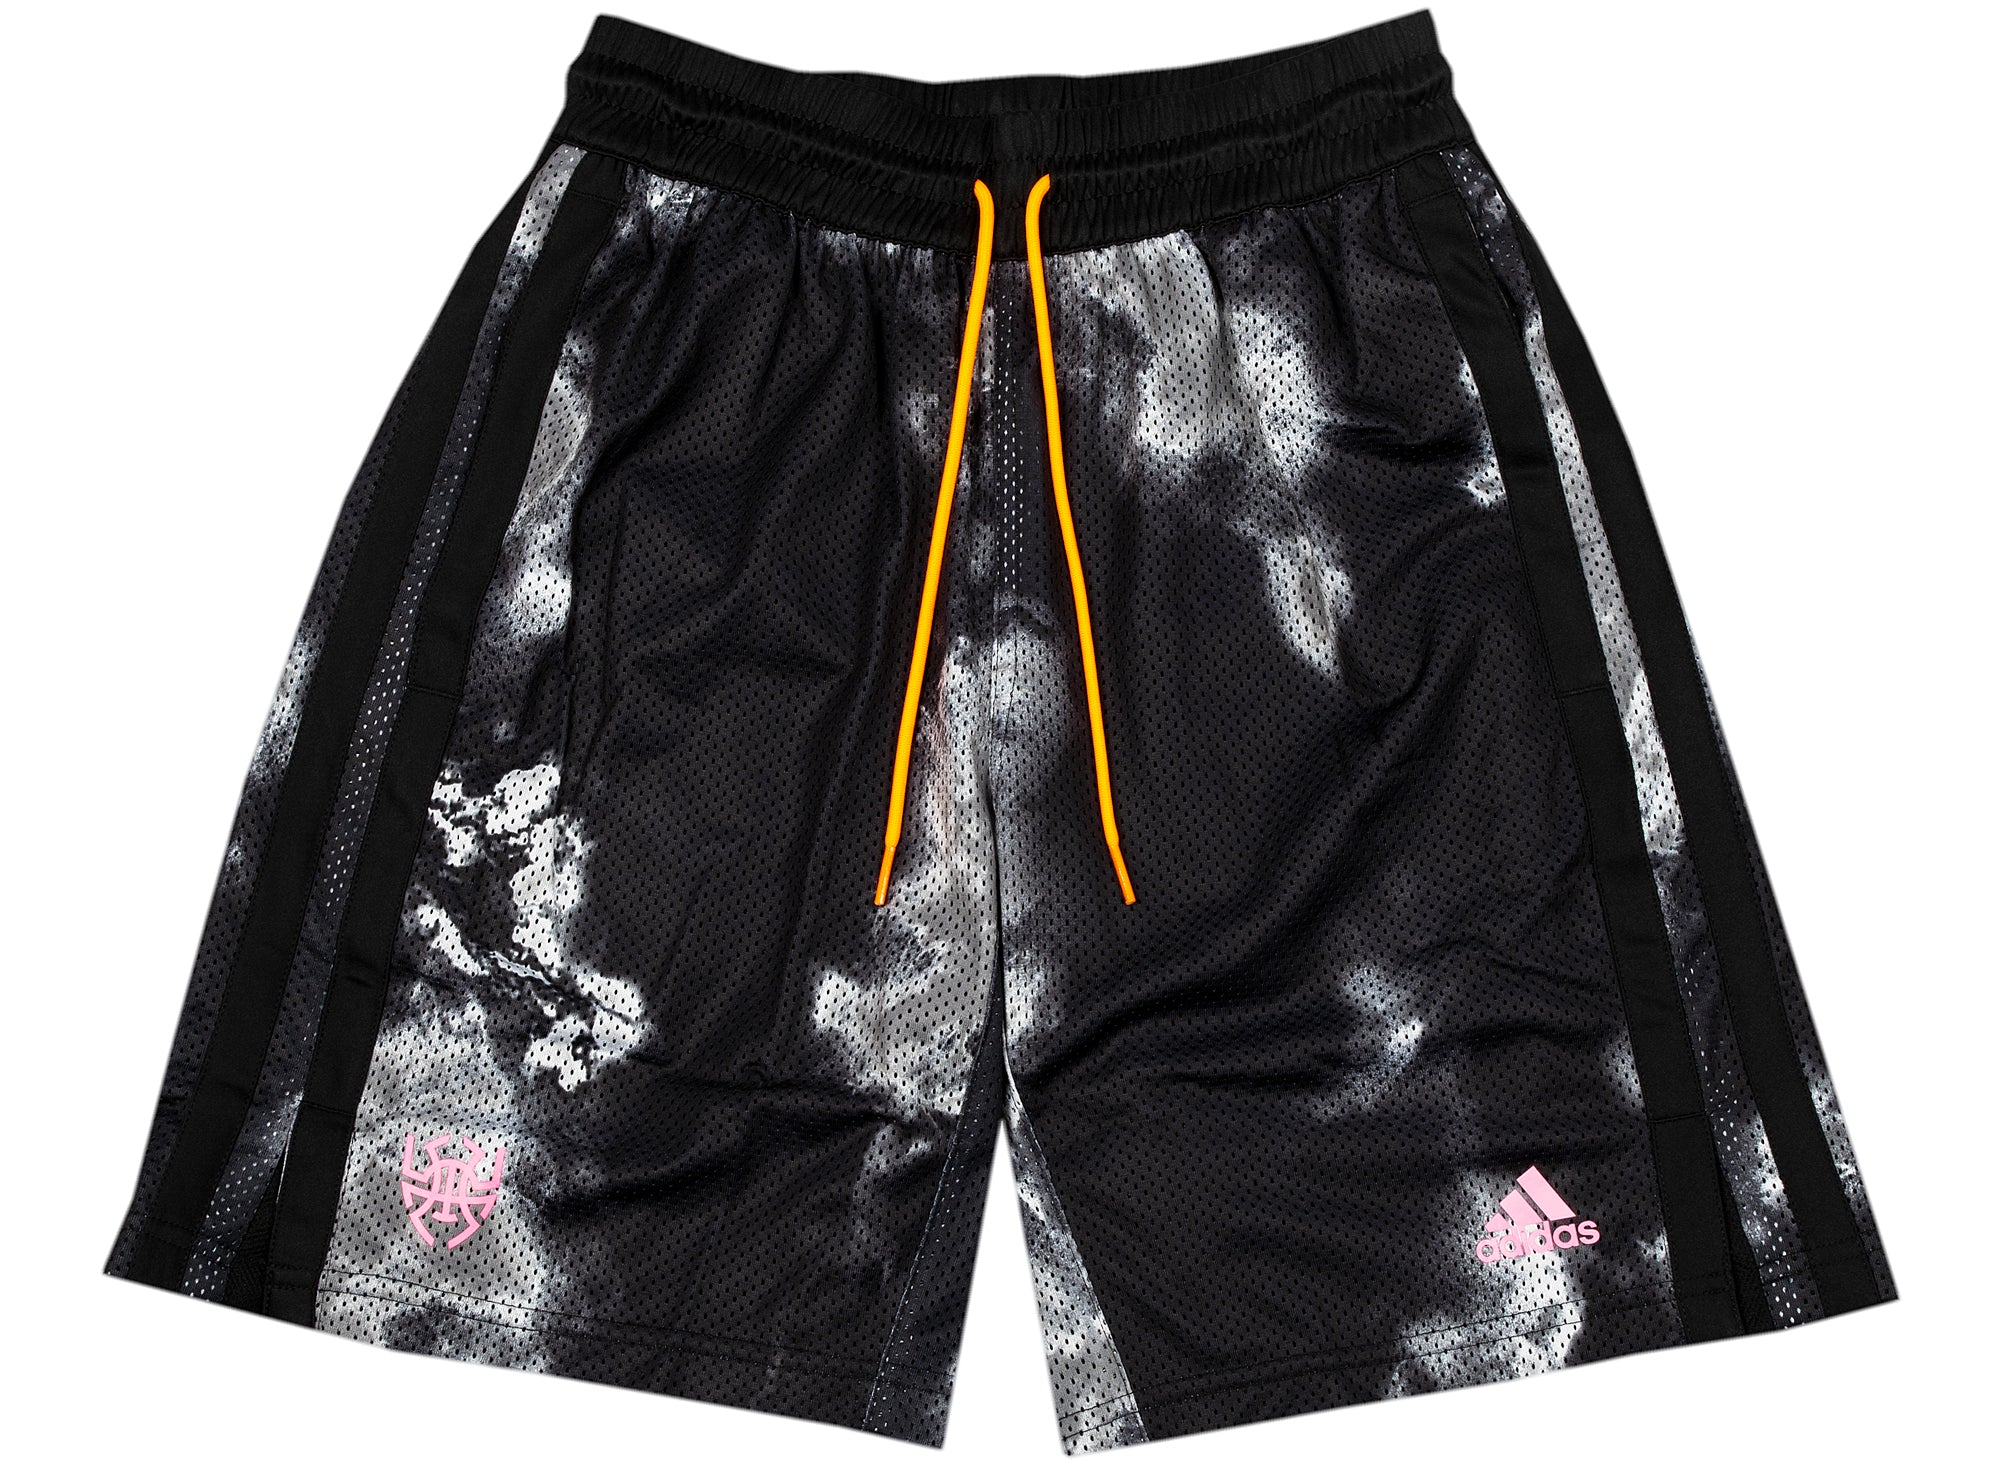 Adidas Donovan Mitchell Shorts in Black xld